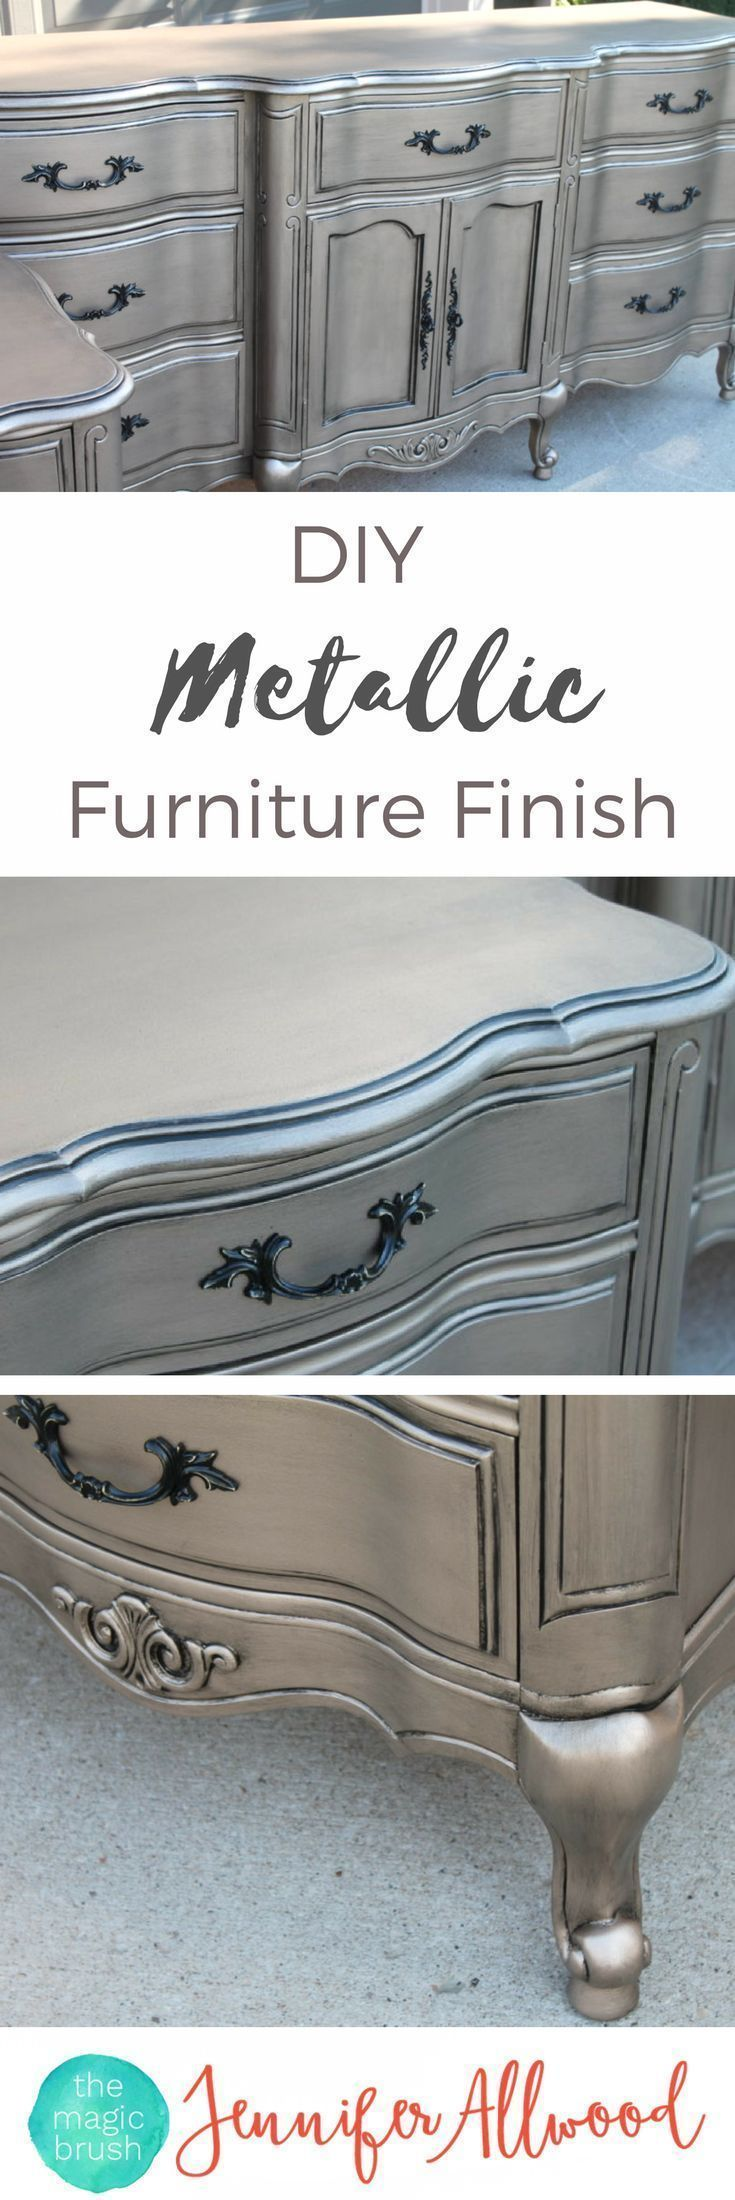 Ideas : DIY Silver Furniture Finish   The Magic Brush   This metallic painted furniture is so popular and easy to DI. Use my furniture painting tips and step by step instructions to give finally paint a dresser makeover by Jennifer Allwood #diy #diyhomedecor #howto #paintedfurniture #furniture #makeover #repurpose